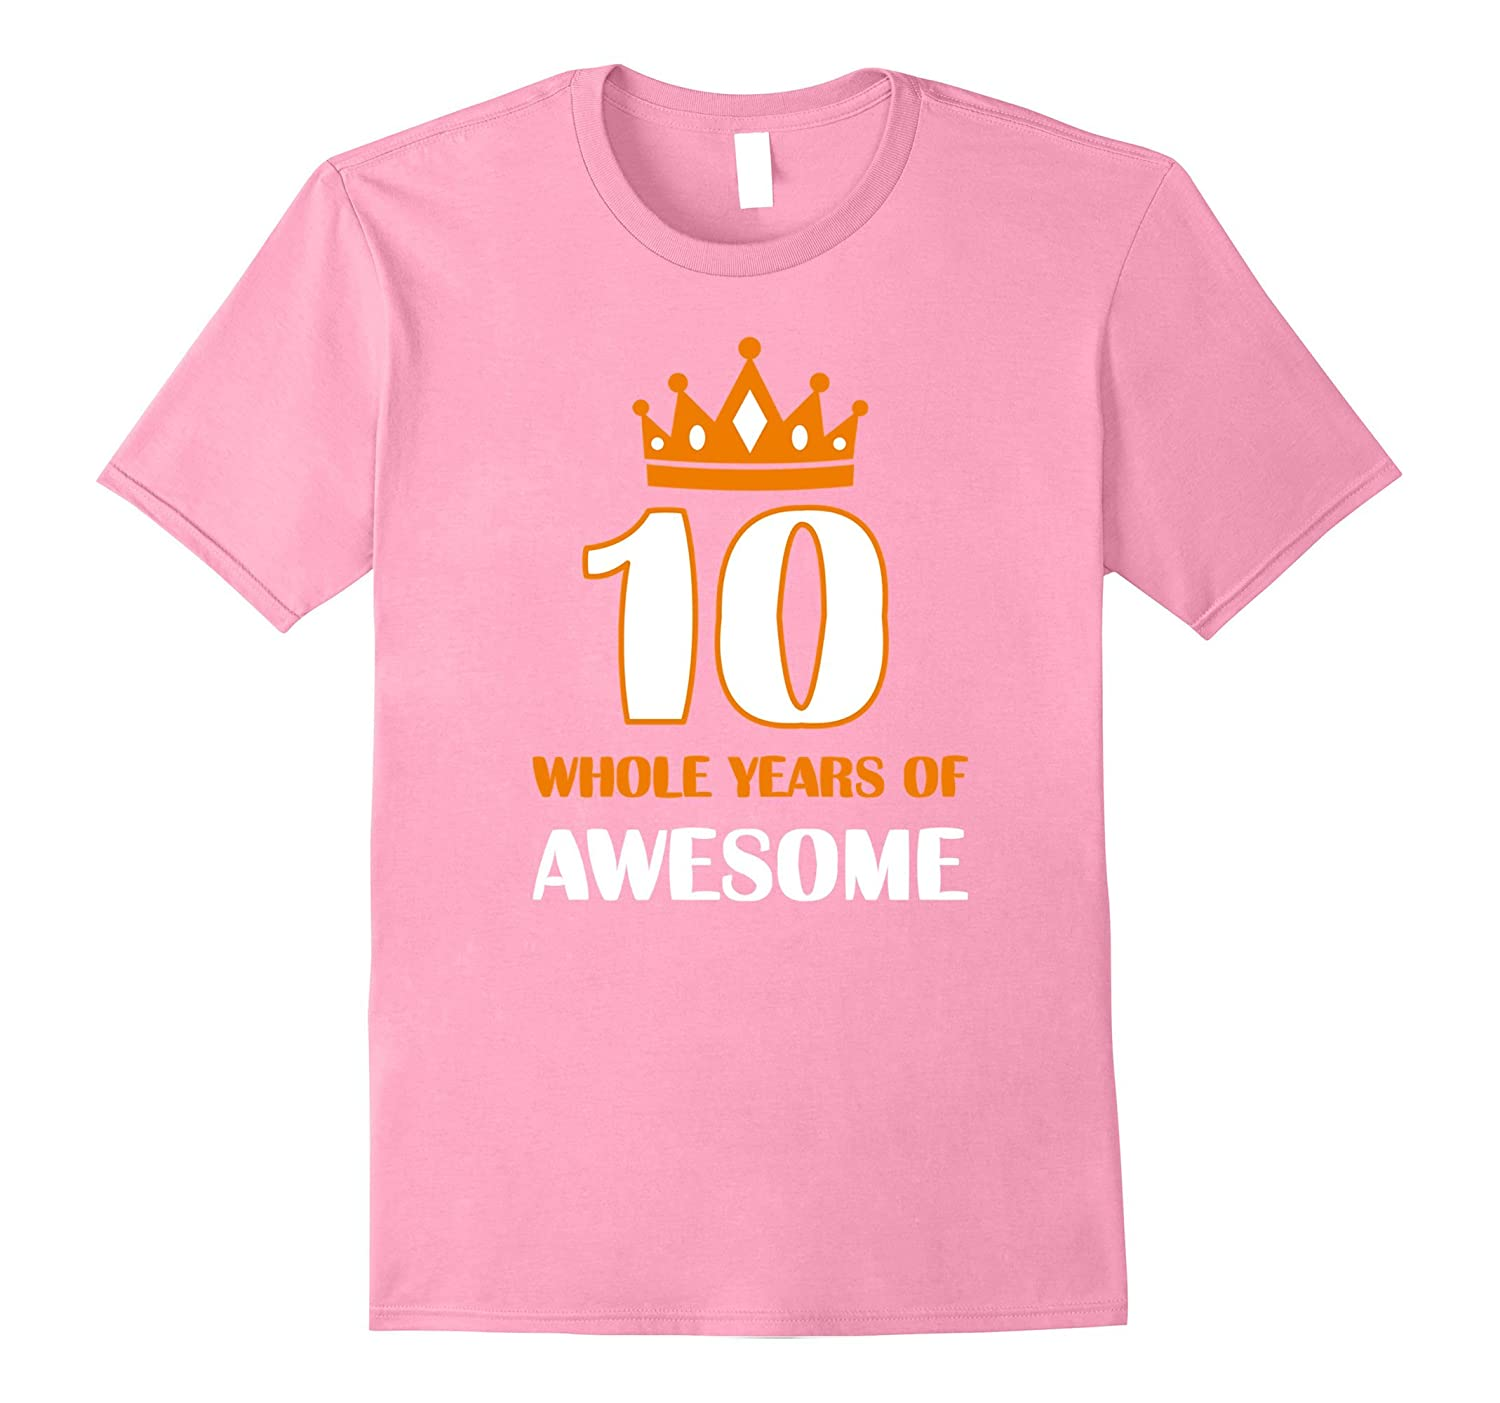 10th Birthday Gift T-Shirt Kids 10 Whole Years of Awesome Te-CD